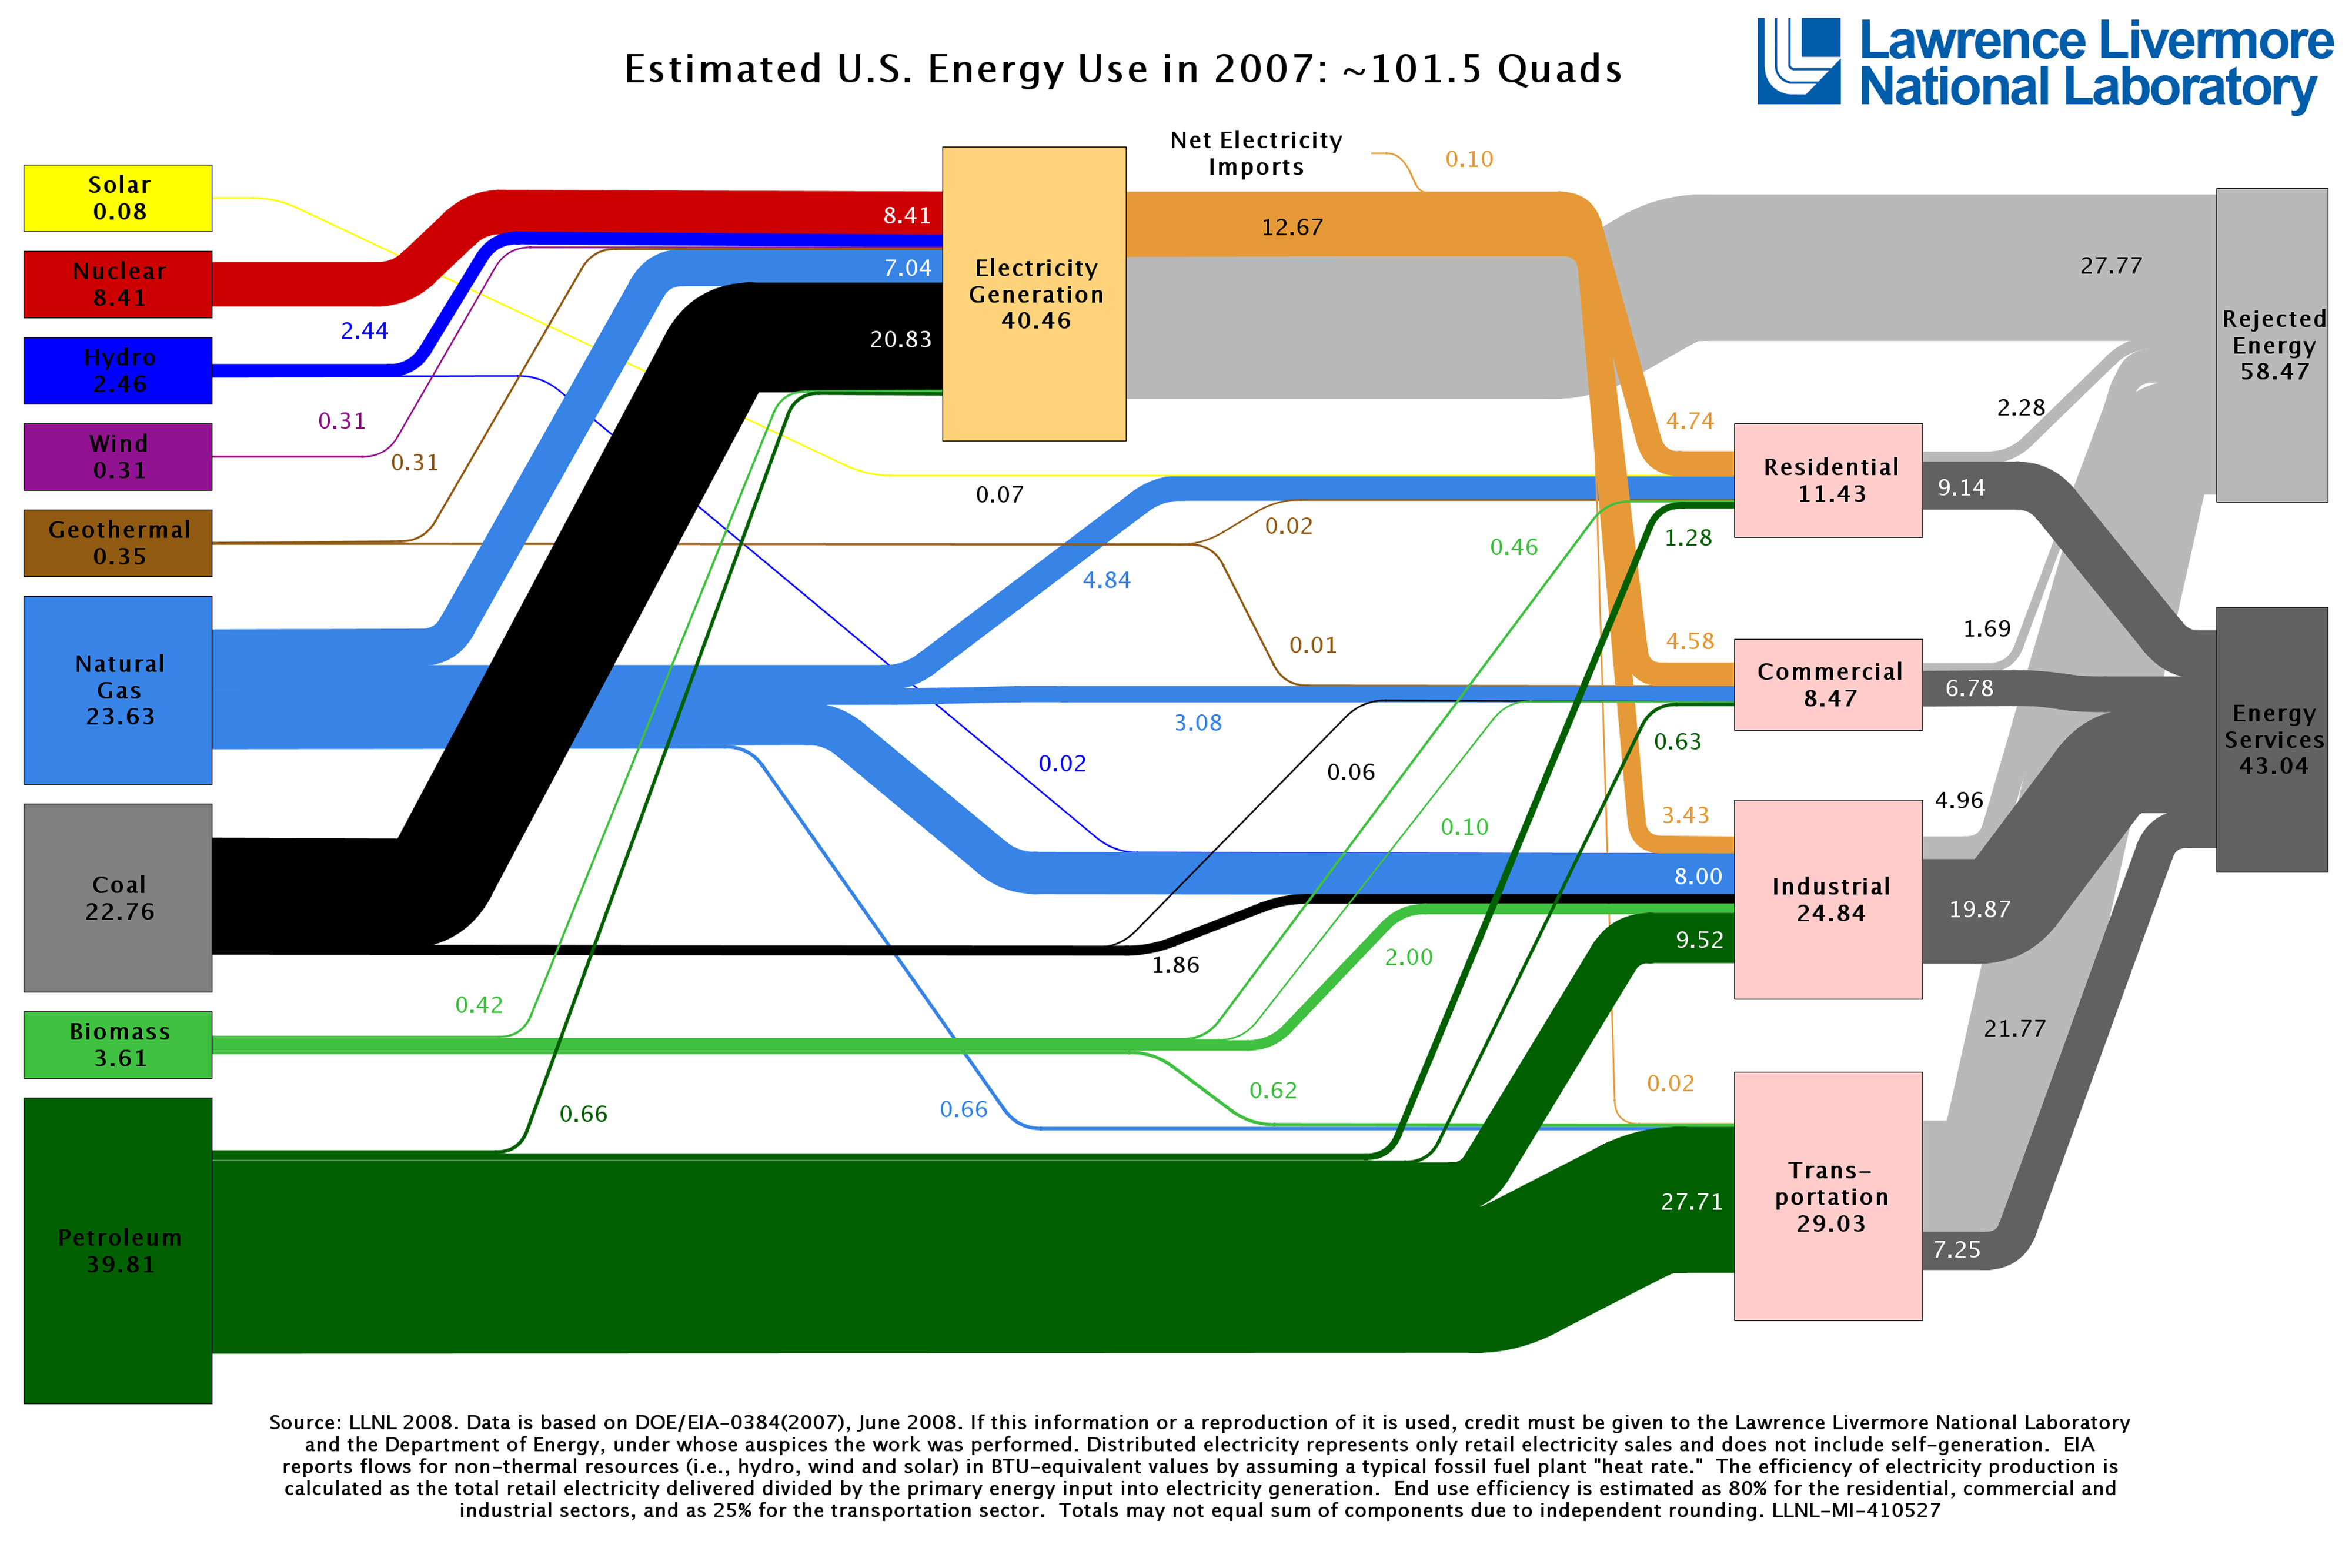 US energy in 2007